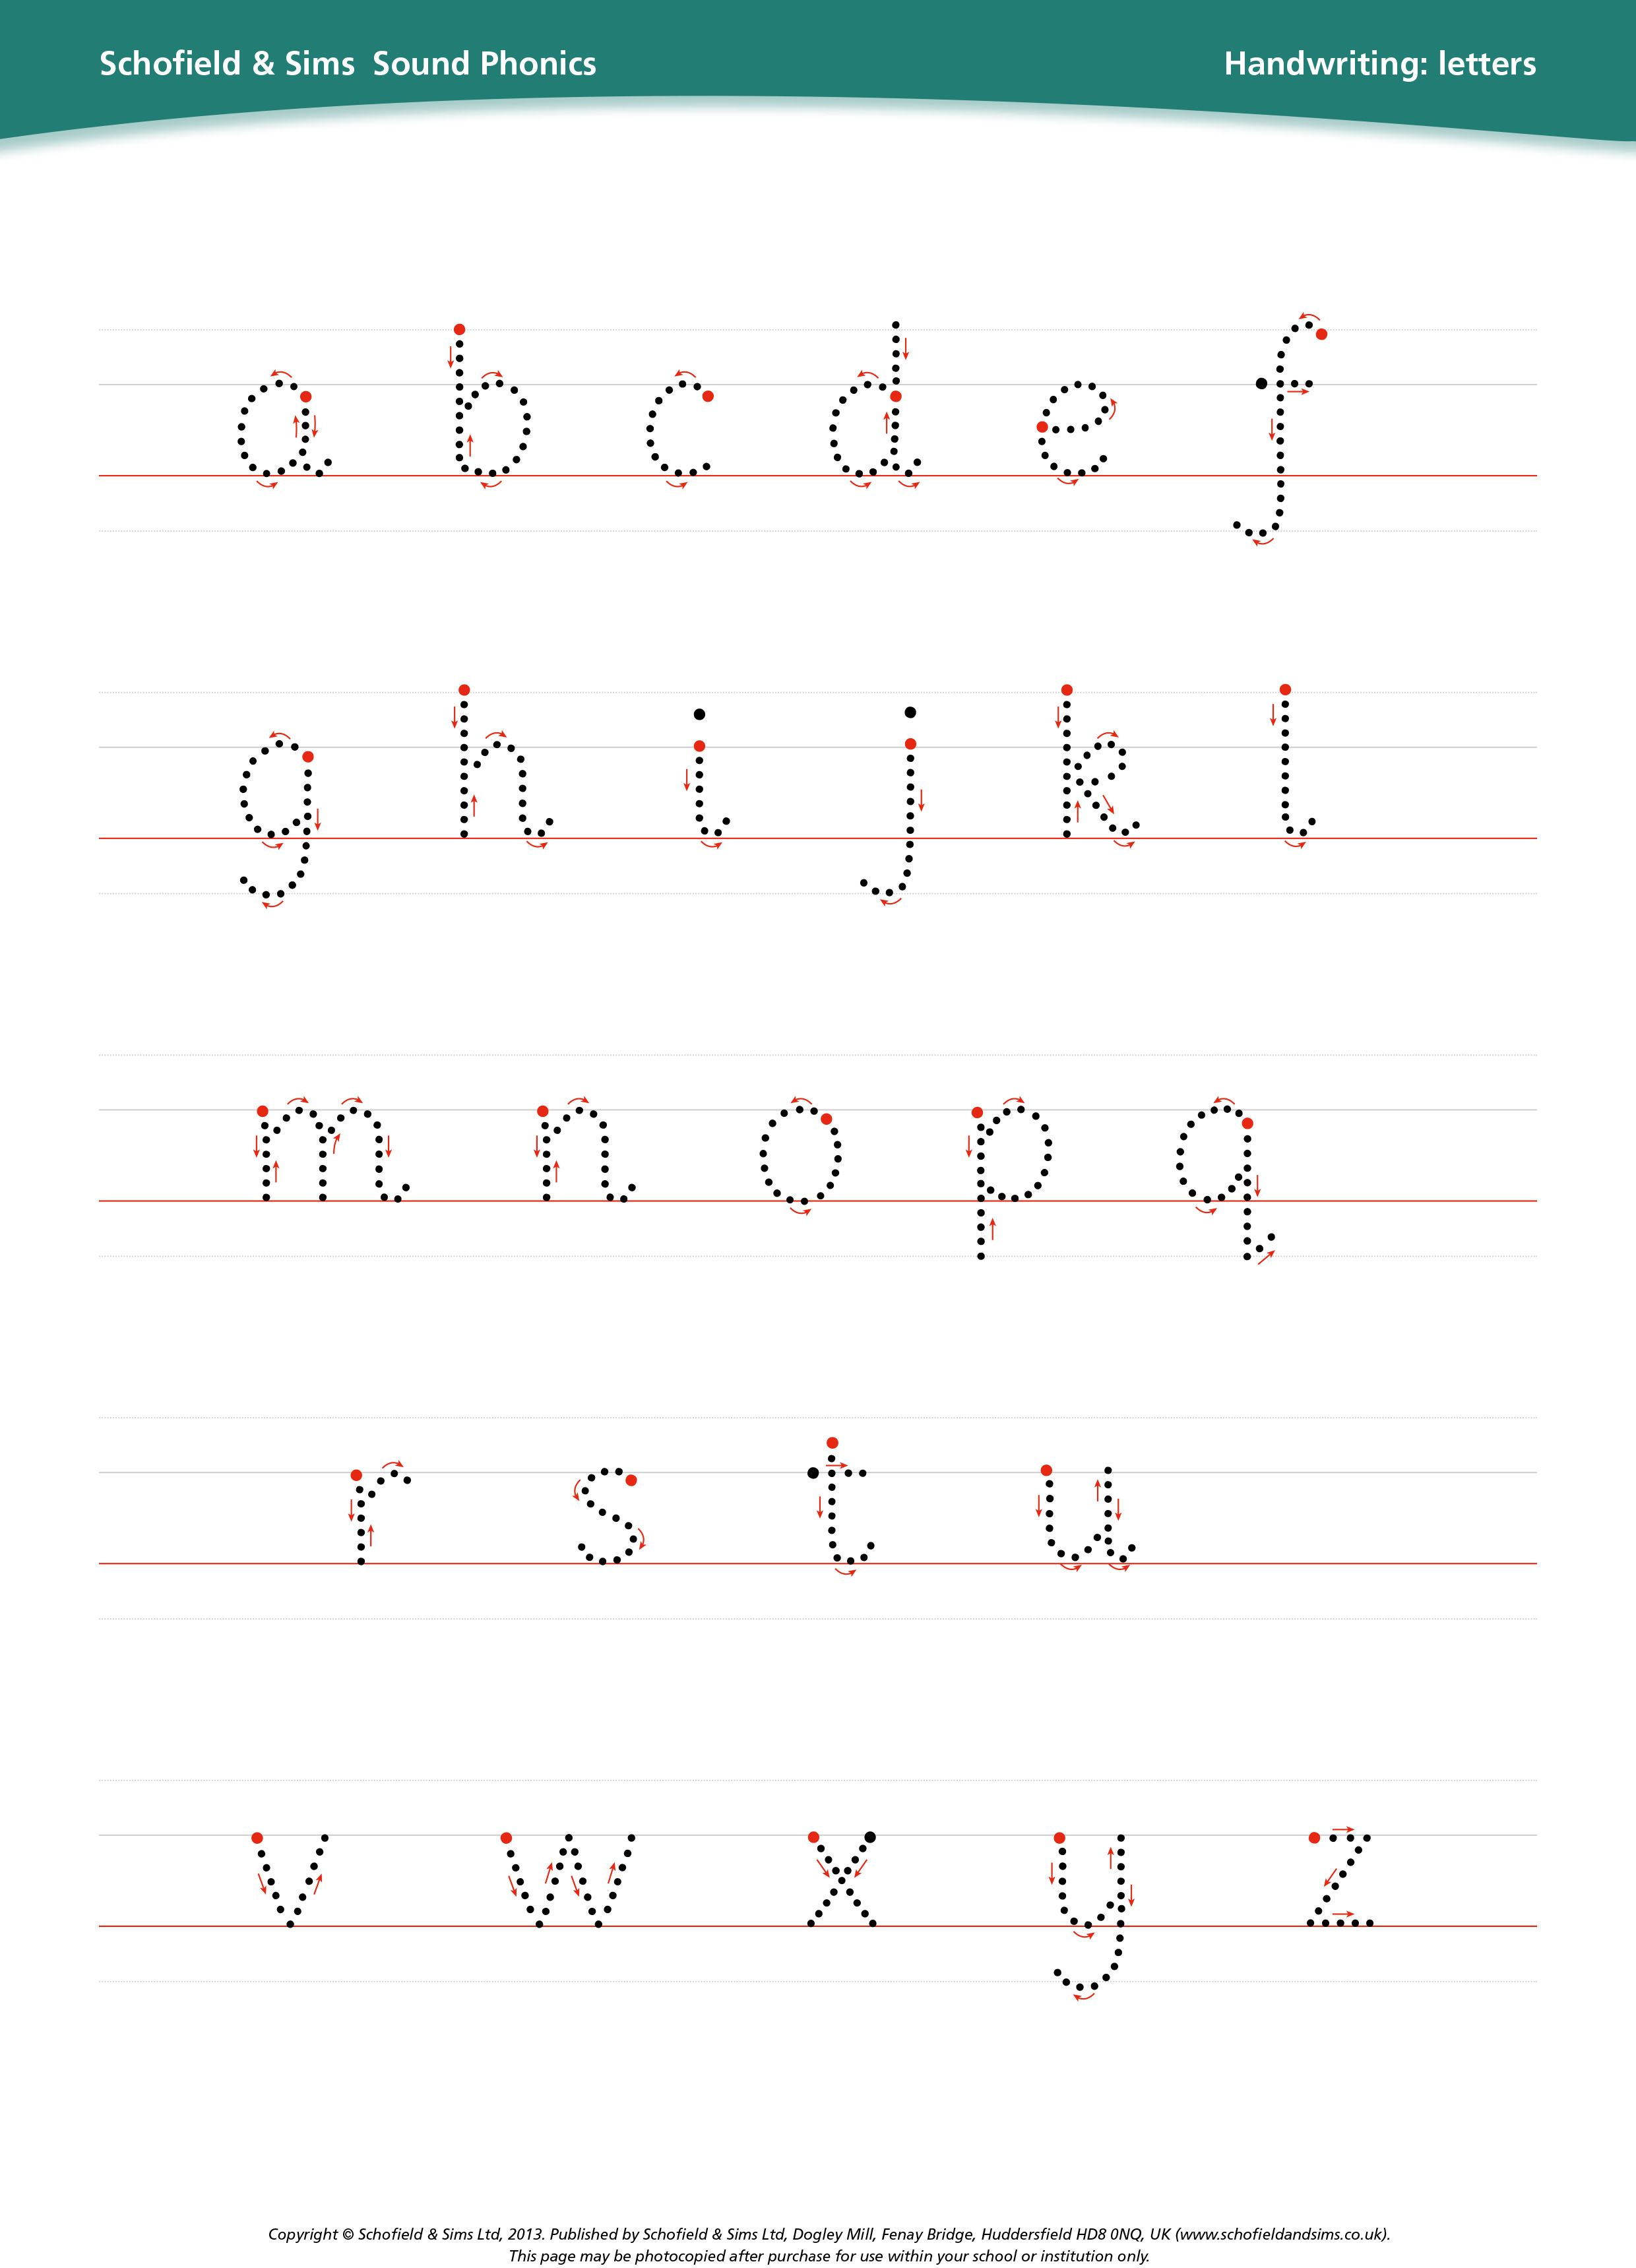 Handwriting Letters To Teach Children How To Form Letters